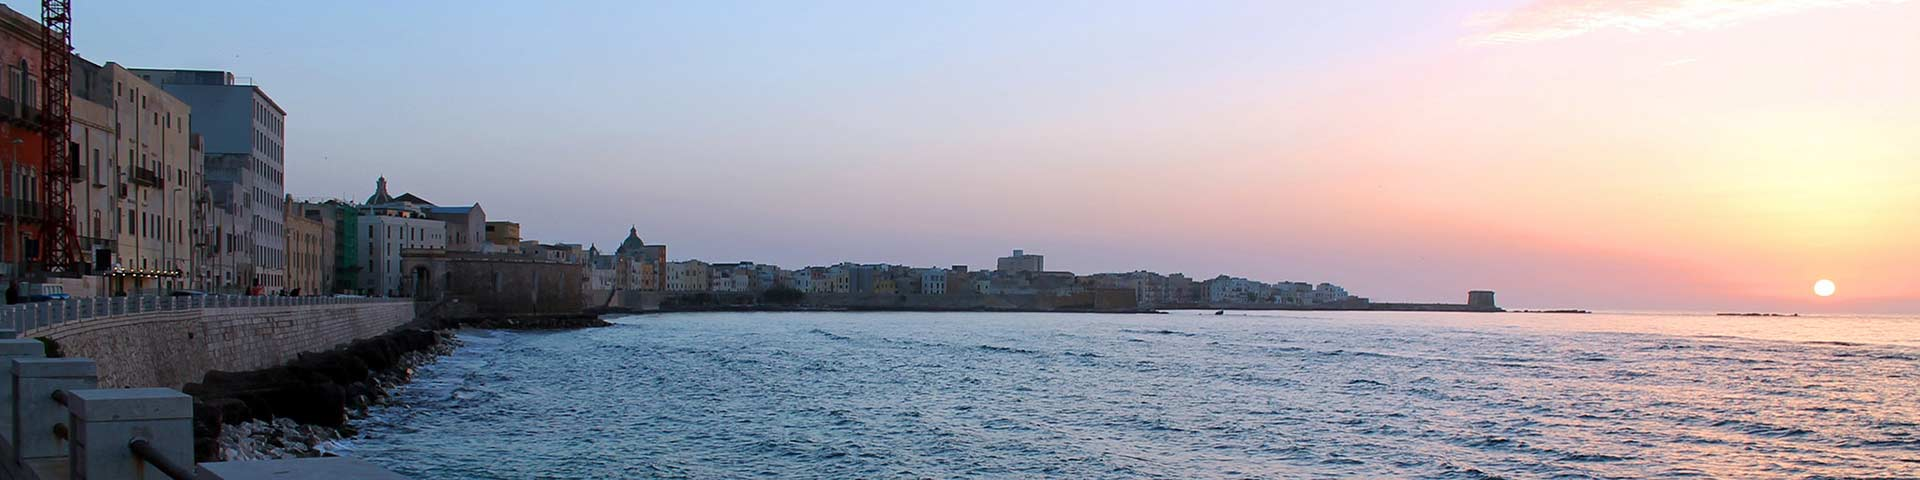 Excursions in Trapani